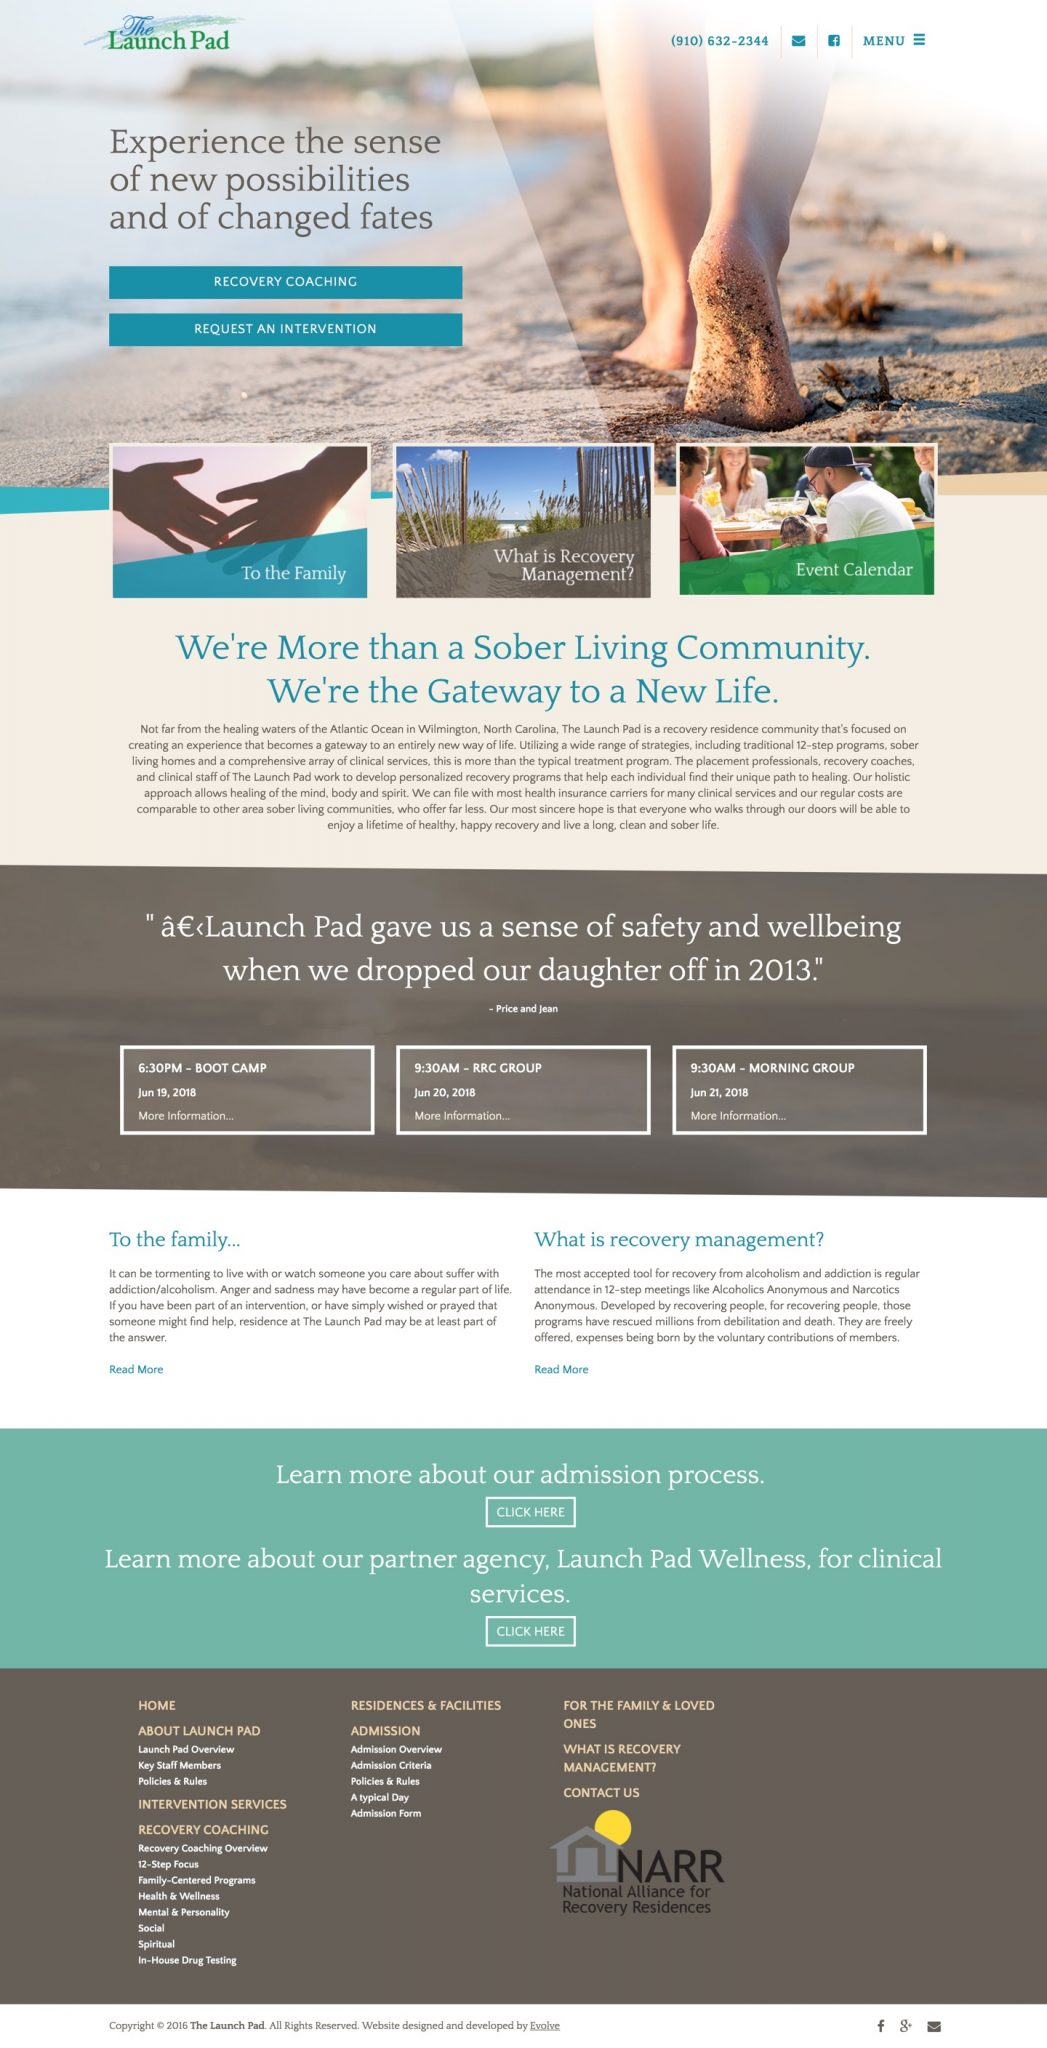 Launch Pad | Sober Living & Clinical Services in Wilmington, NC